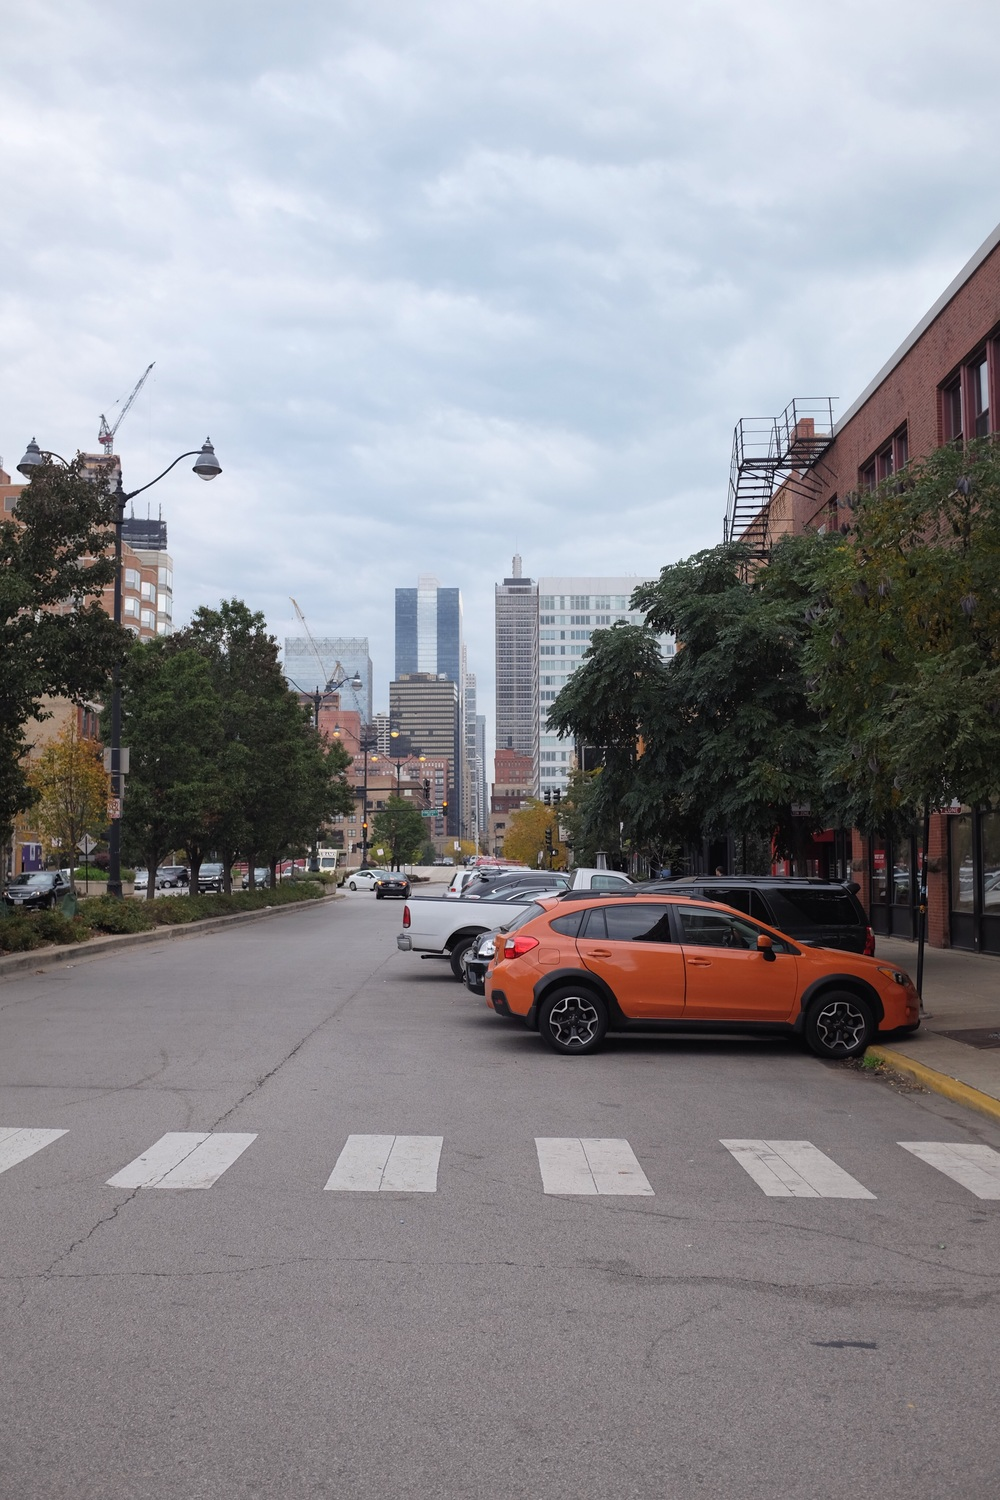 This photo may or may not be included in today's post solely because I love the orange Subaru Crosstrek.